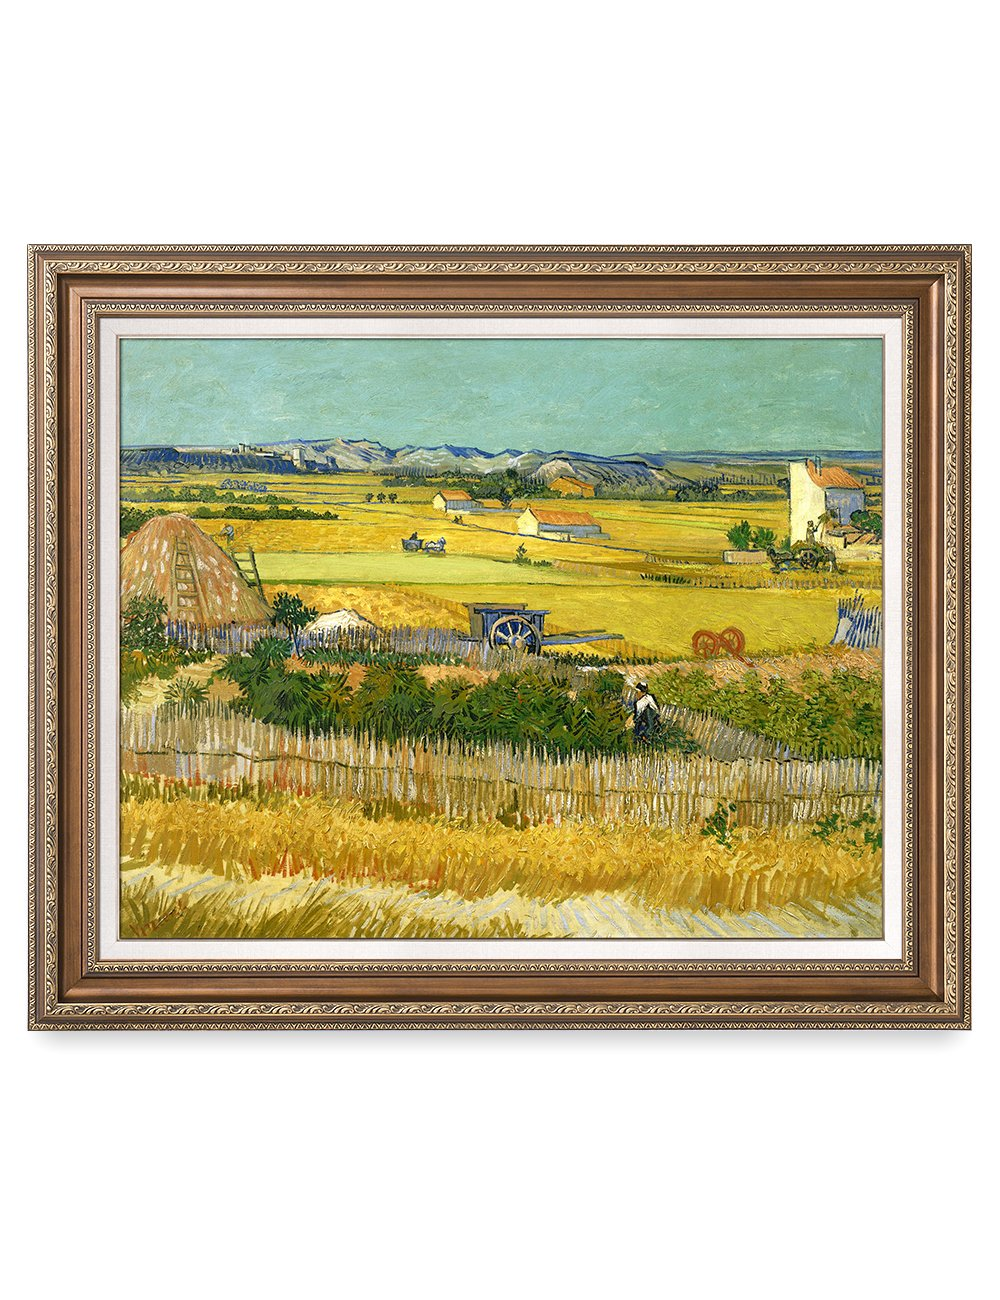 DECORARTS - The Harvest, Vincent Van Gogh Art Reproduction. Giclee Print& Framed Art for Wall Decor. 30x24, Framed Size: 35x29